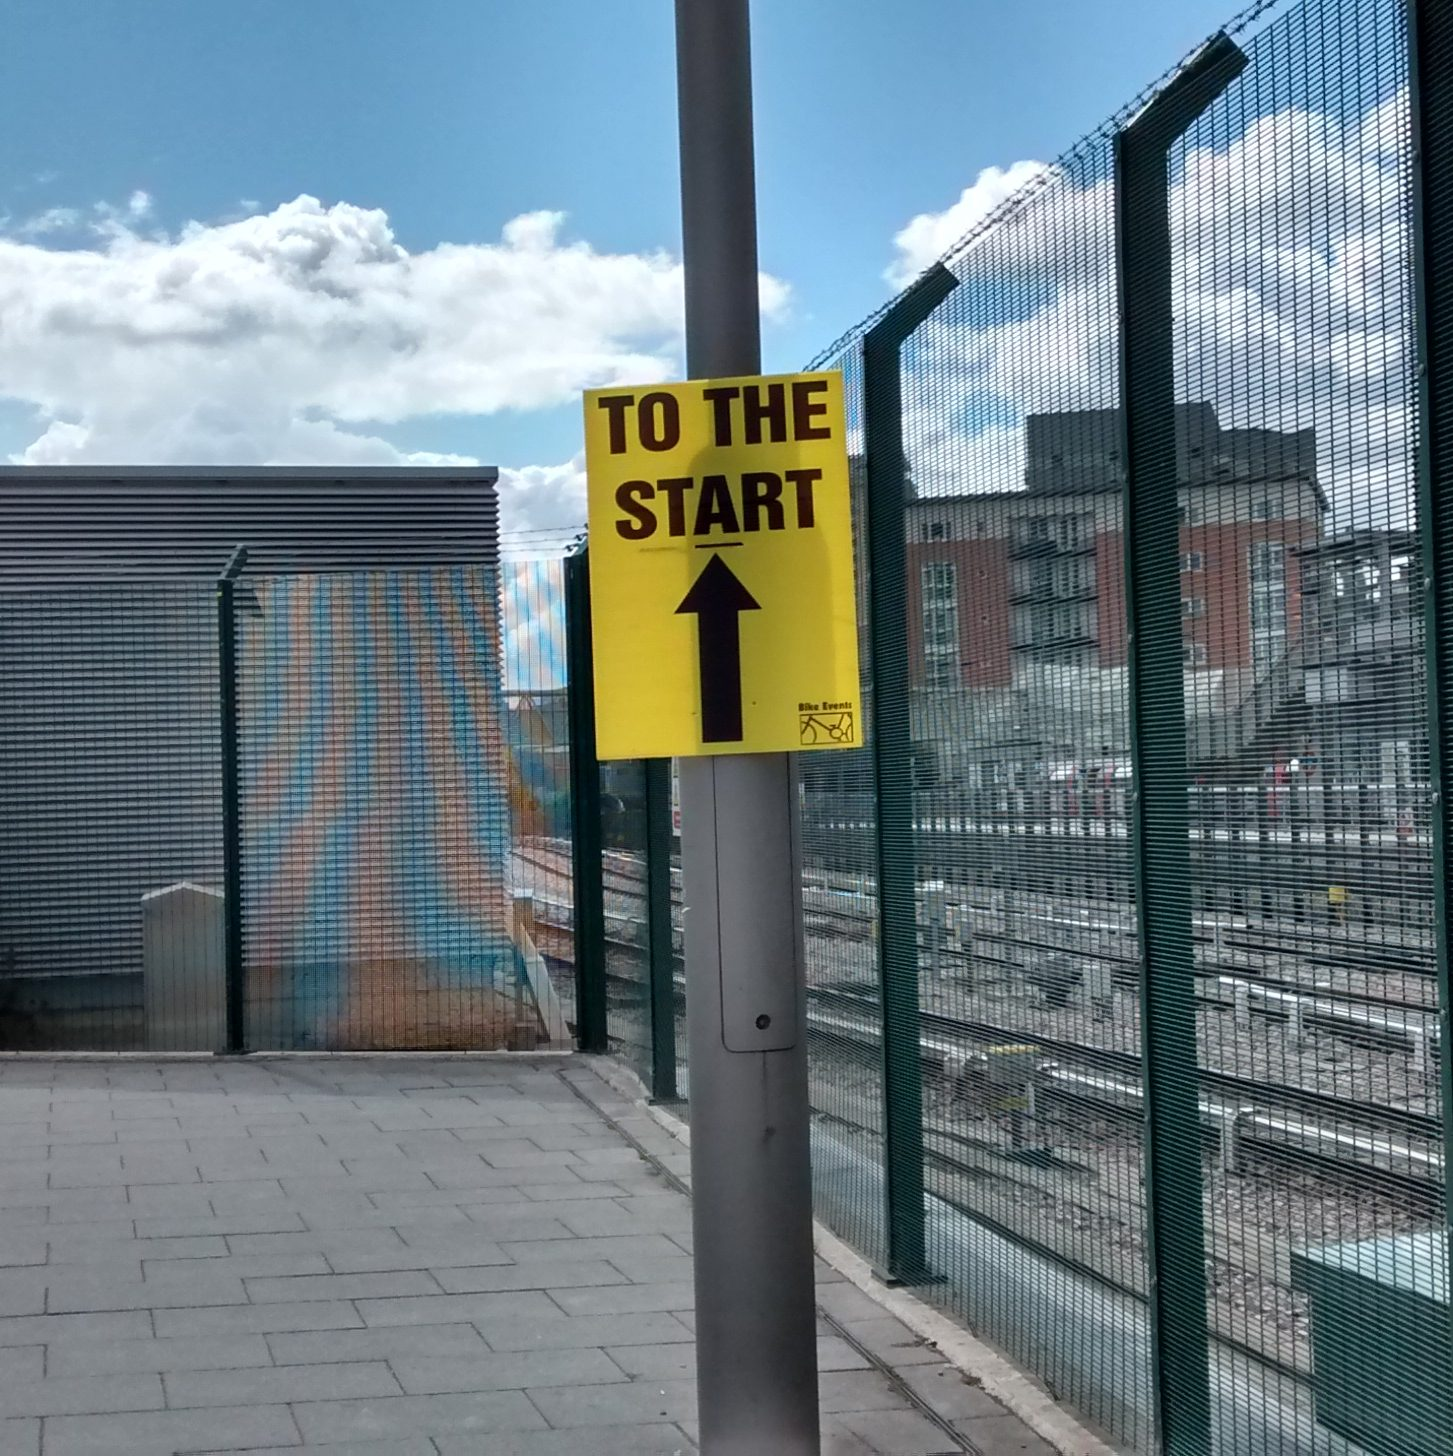 "the image shows a yellow sign attached to a lamppost in an urban environment. The sign reads ""to the start"" with an arrow pointing forwards."